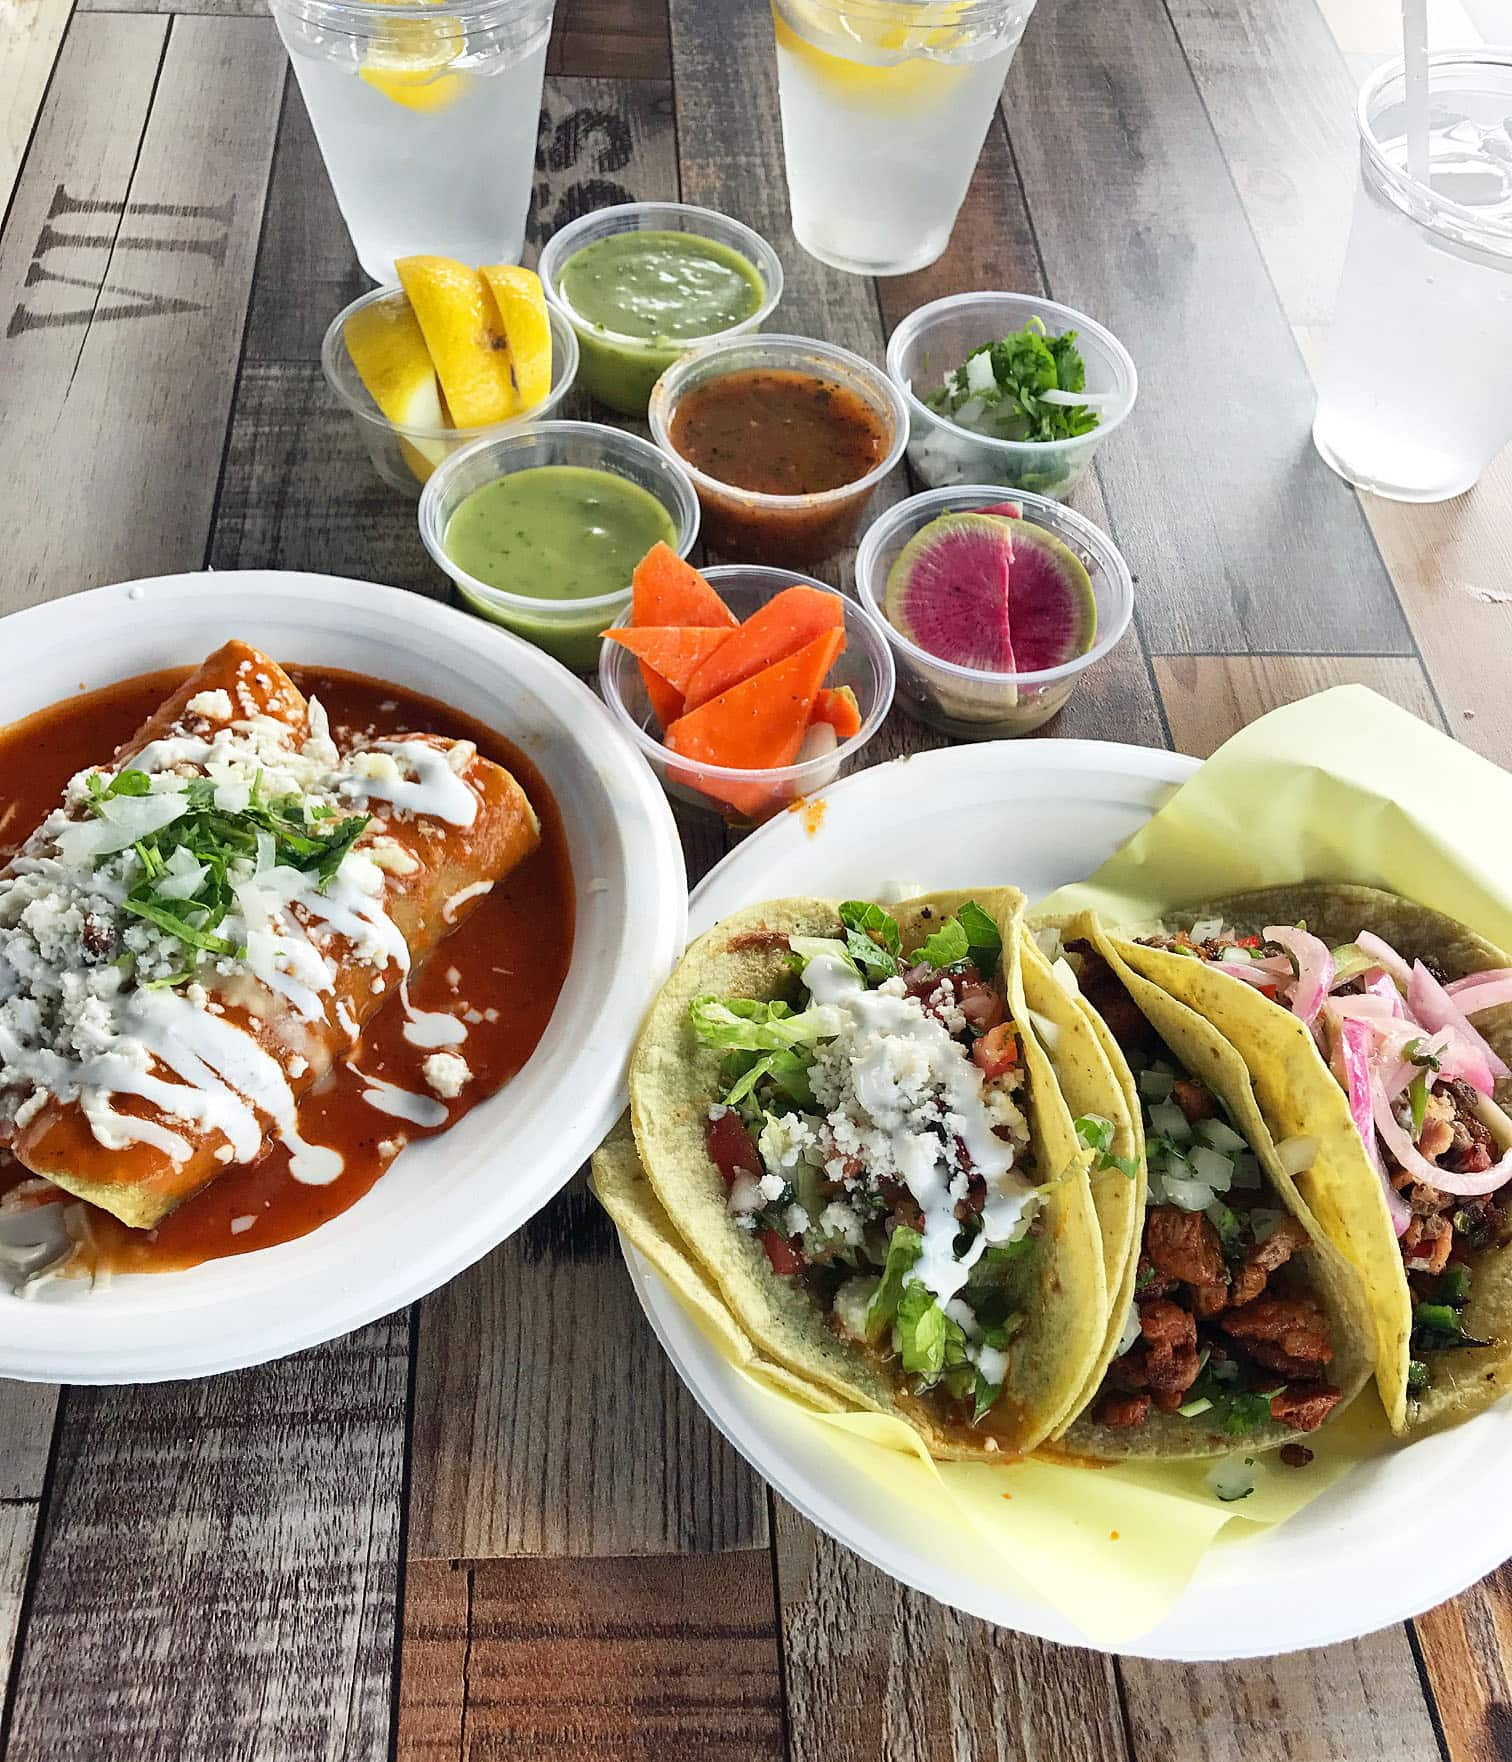 Best Places to Eat in Orange County. The most popular restaurants, food, and dessert in California. www.modernhoney.com Taco Mesa in California